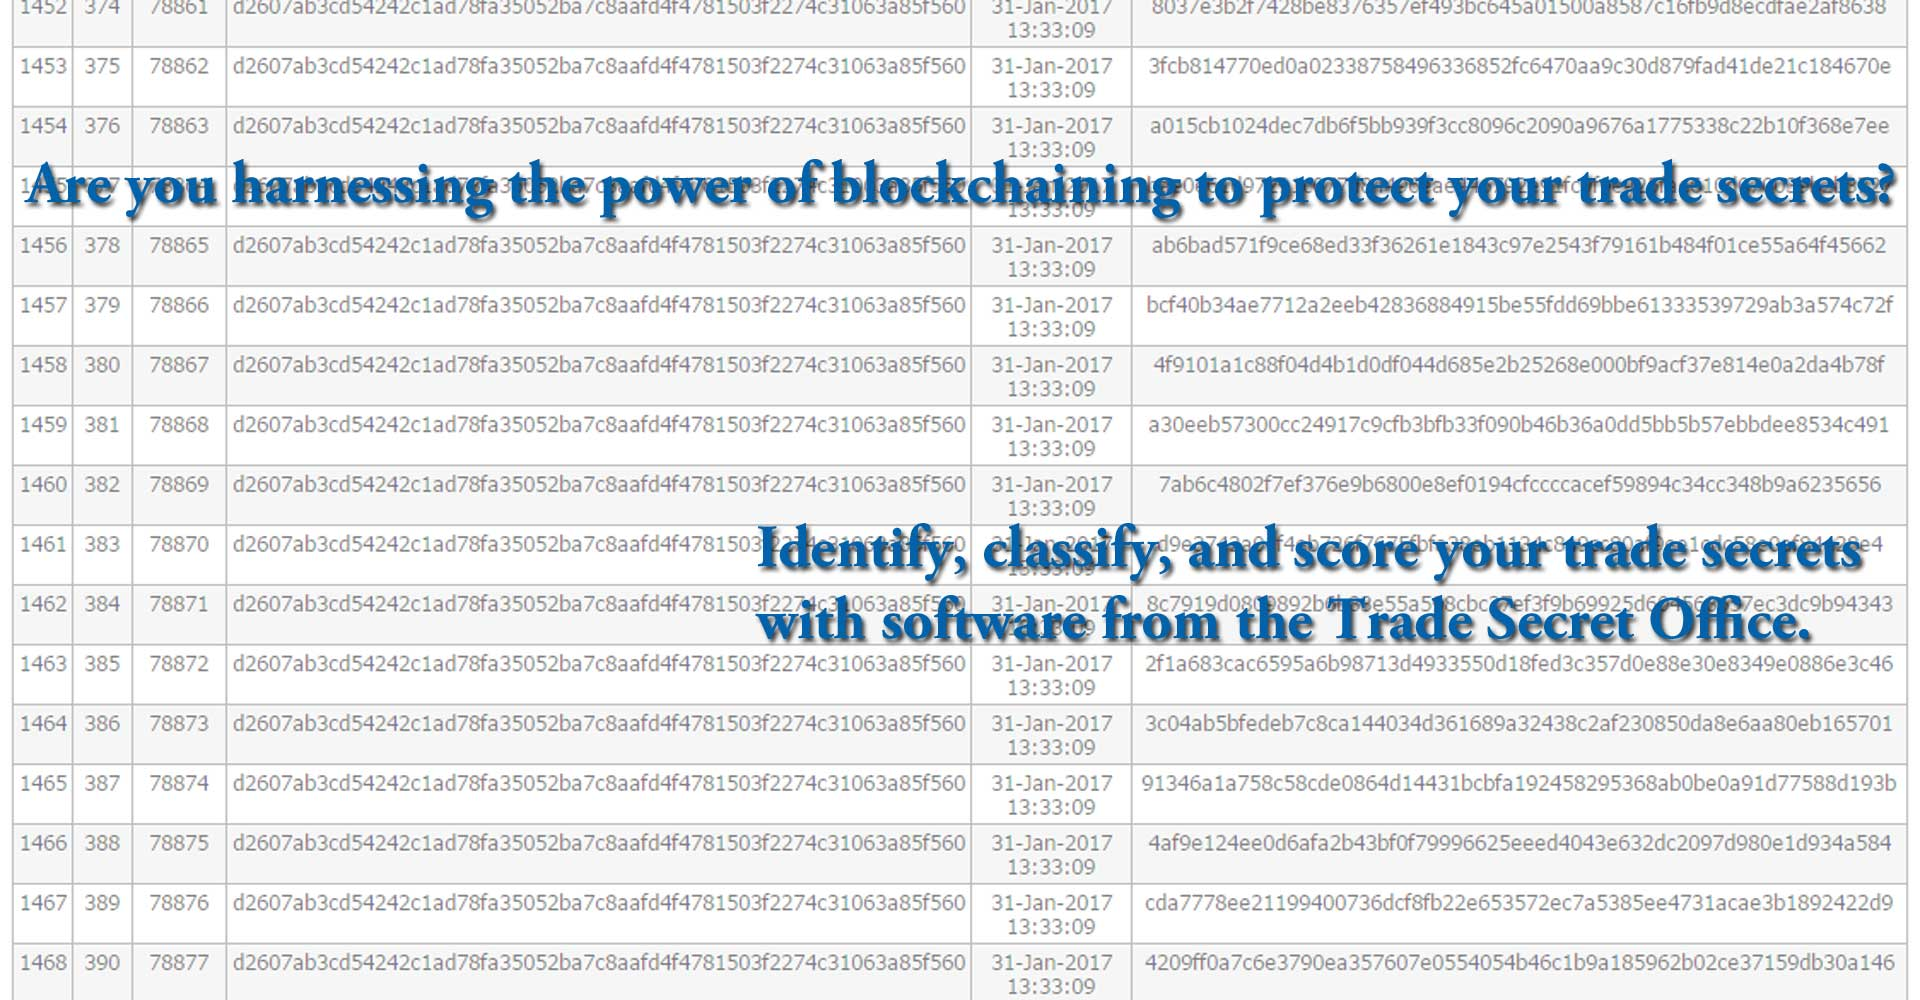 Are you harnessing the power of blockchaining to protect your trade secrets?